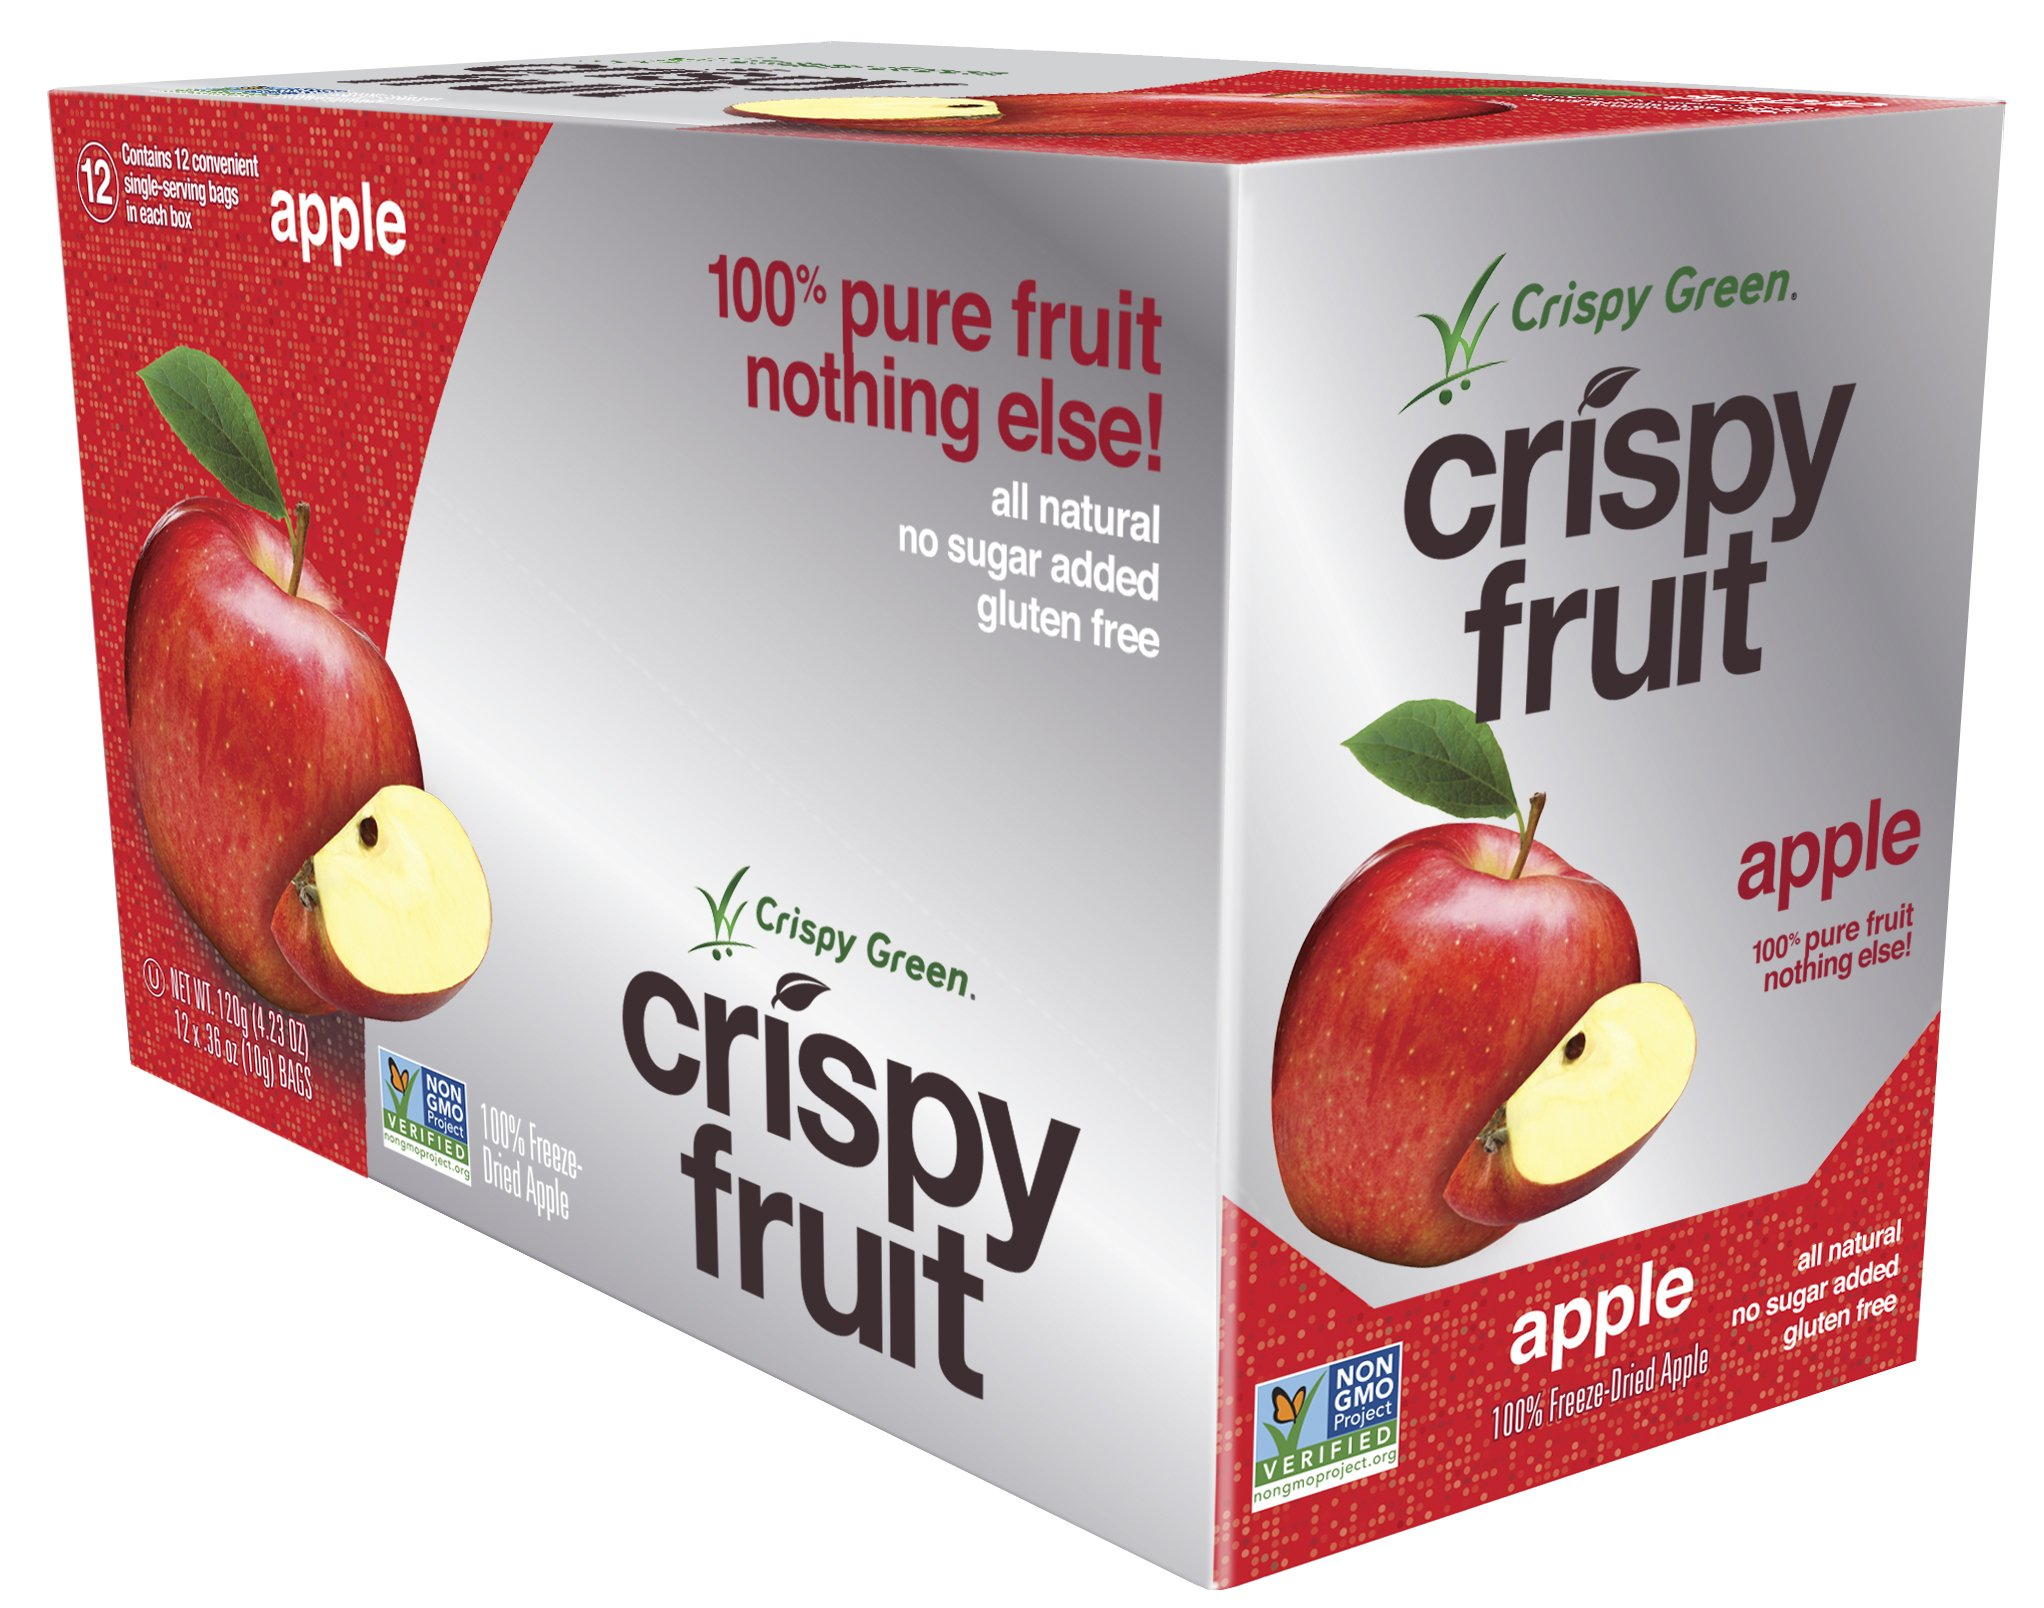 Crispy Green Freeze-Dried Fruits, Non-GMO, Gluten Free, No Sugar Added, Fruit, Apple, 0.36 Ounce (12 Count)